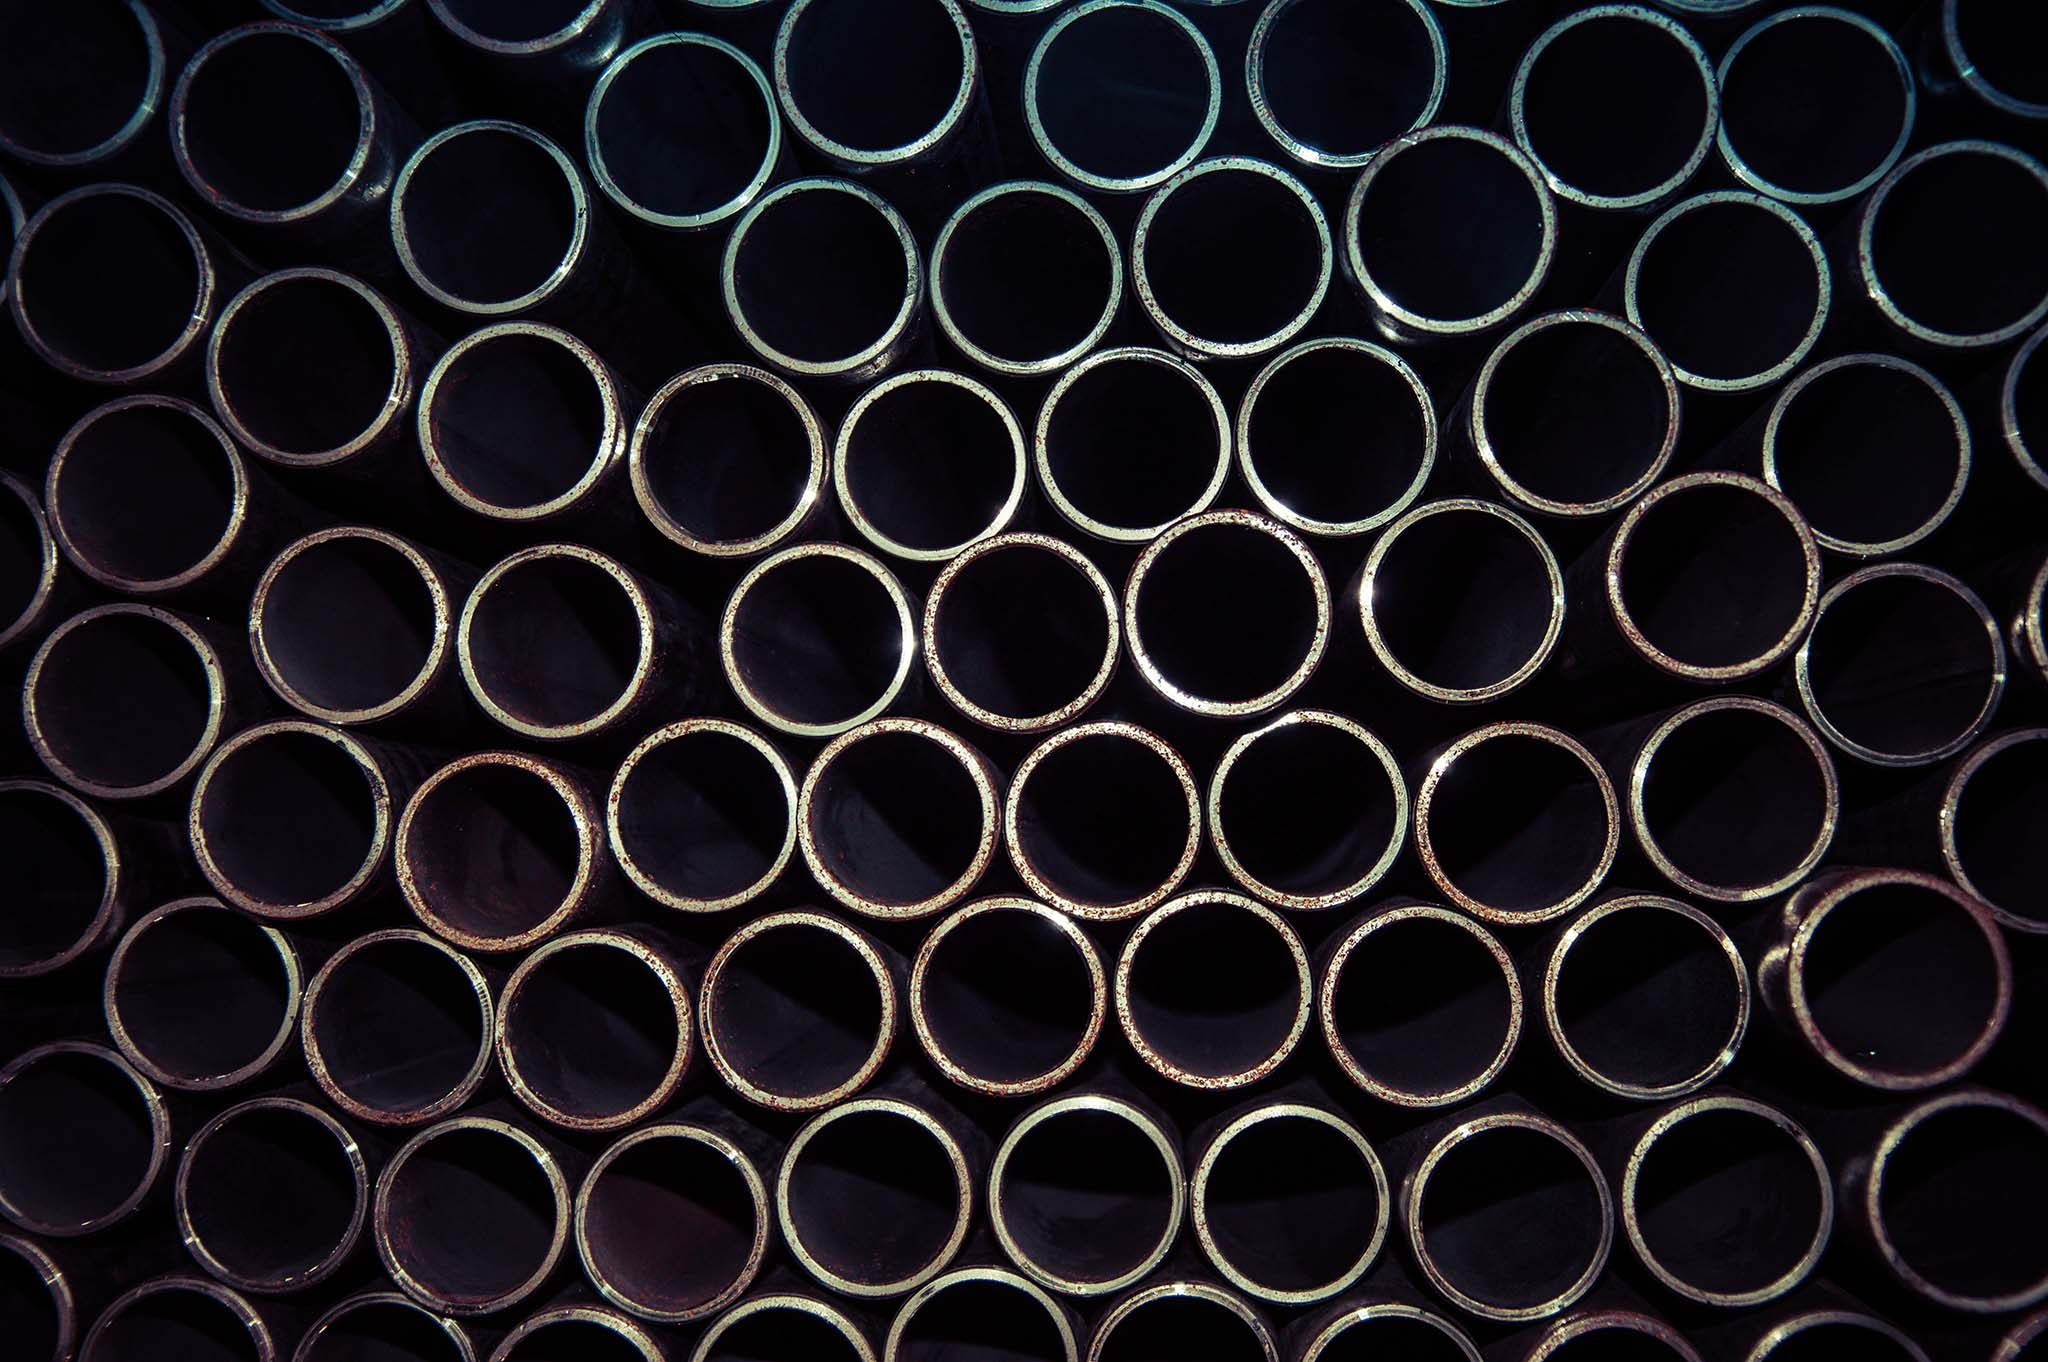 Copper vs. PVC Pipe